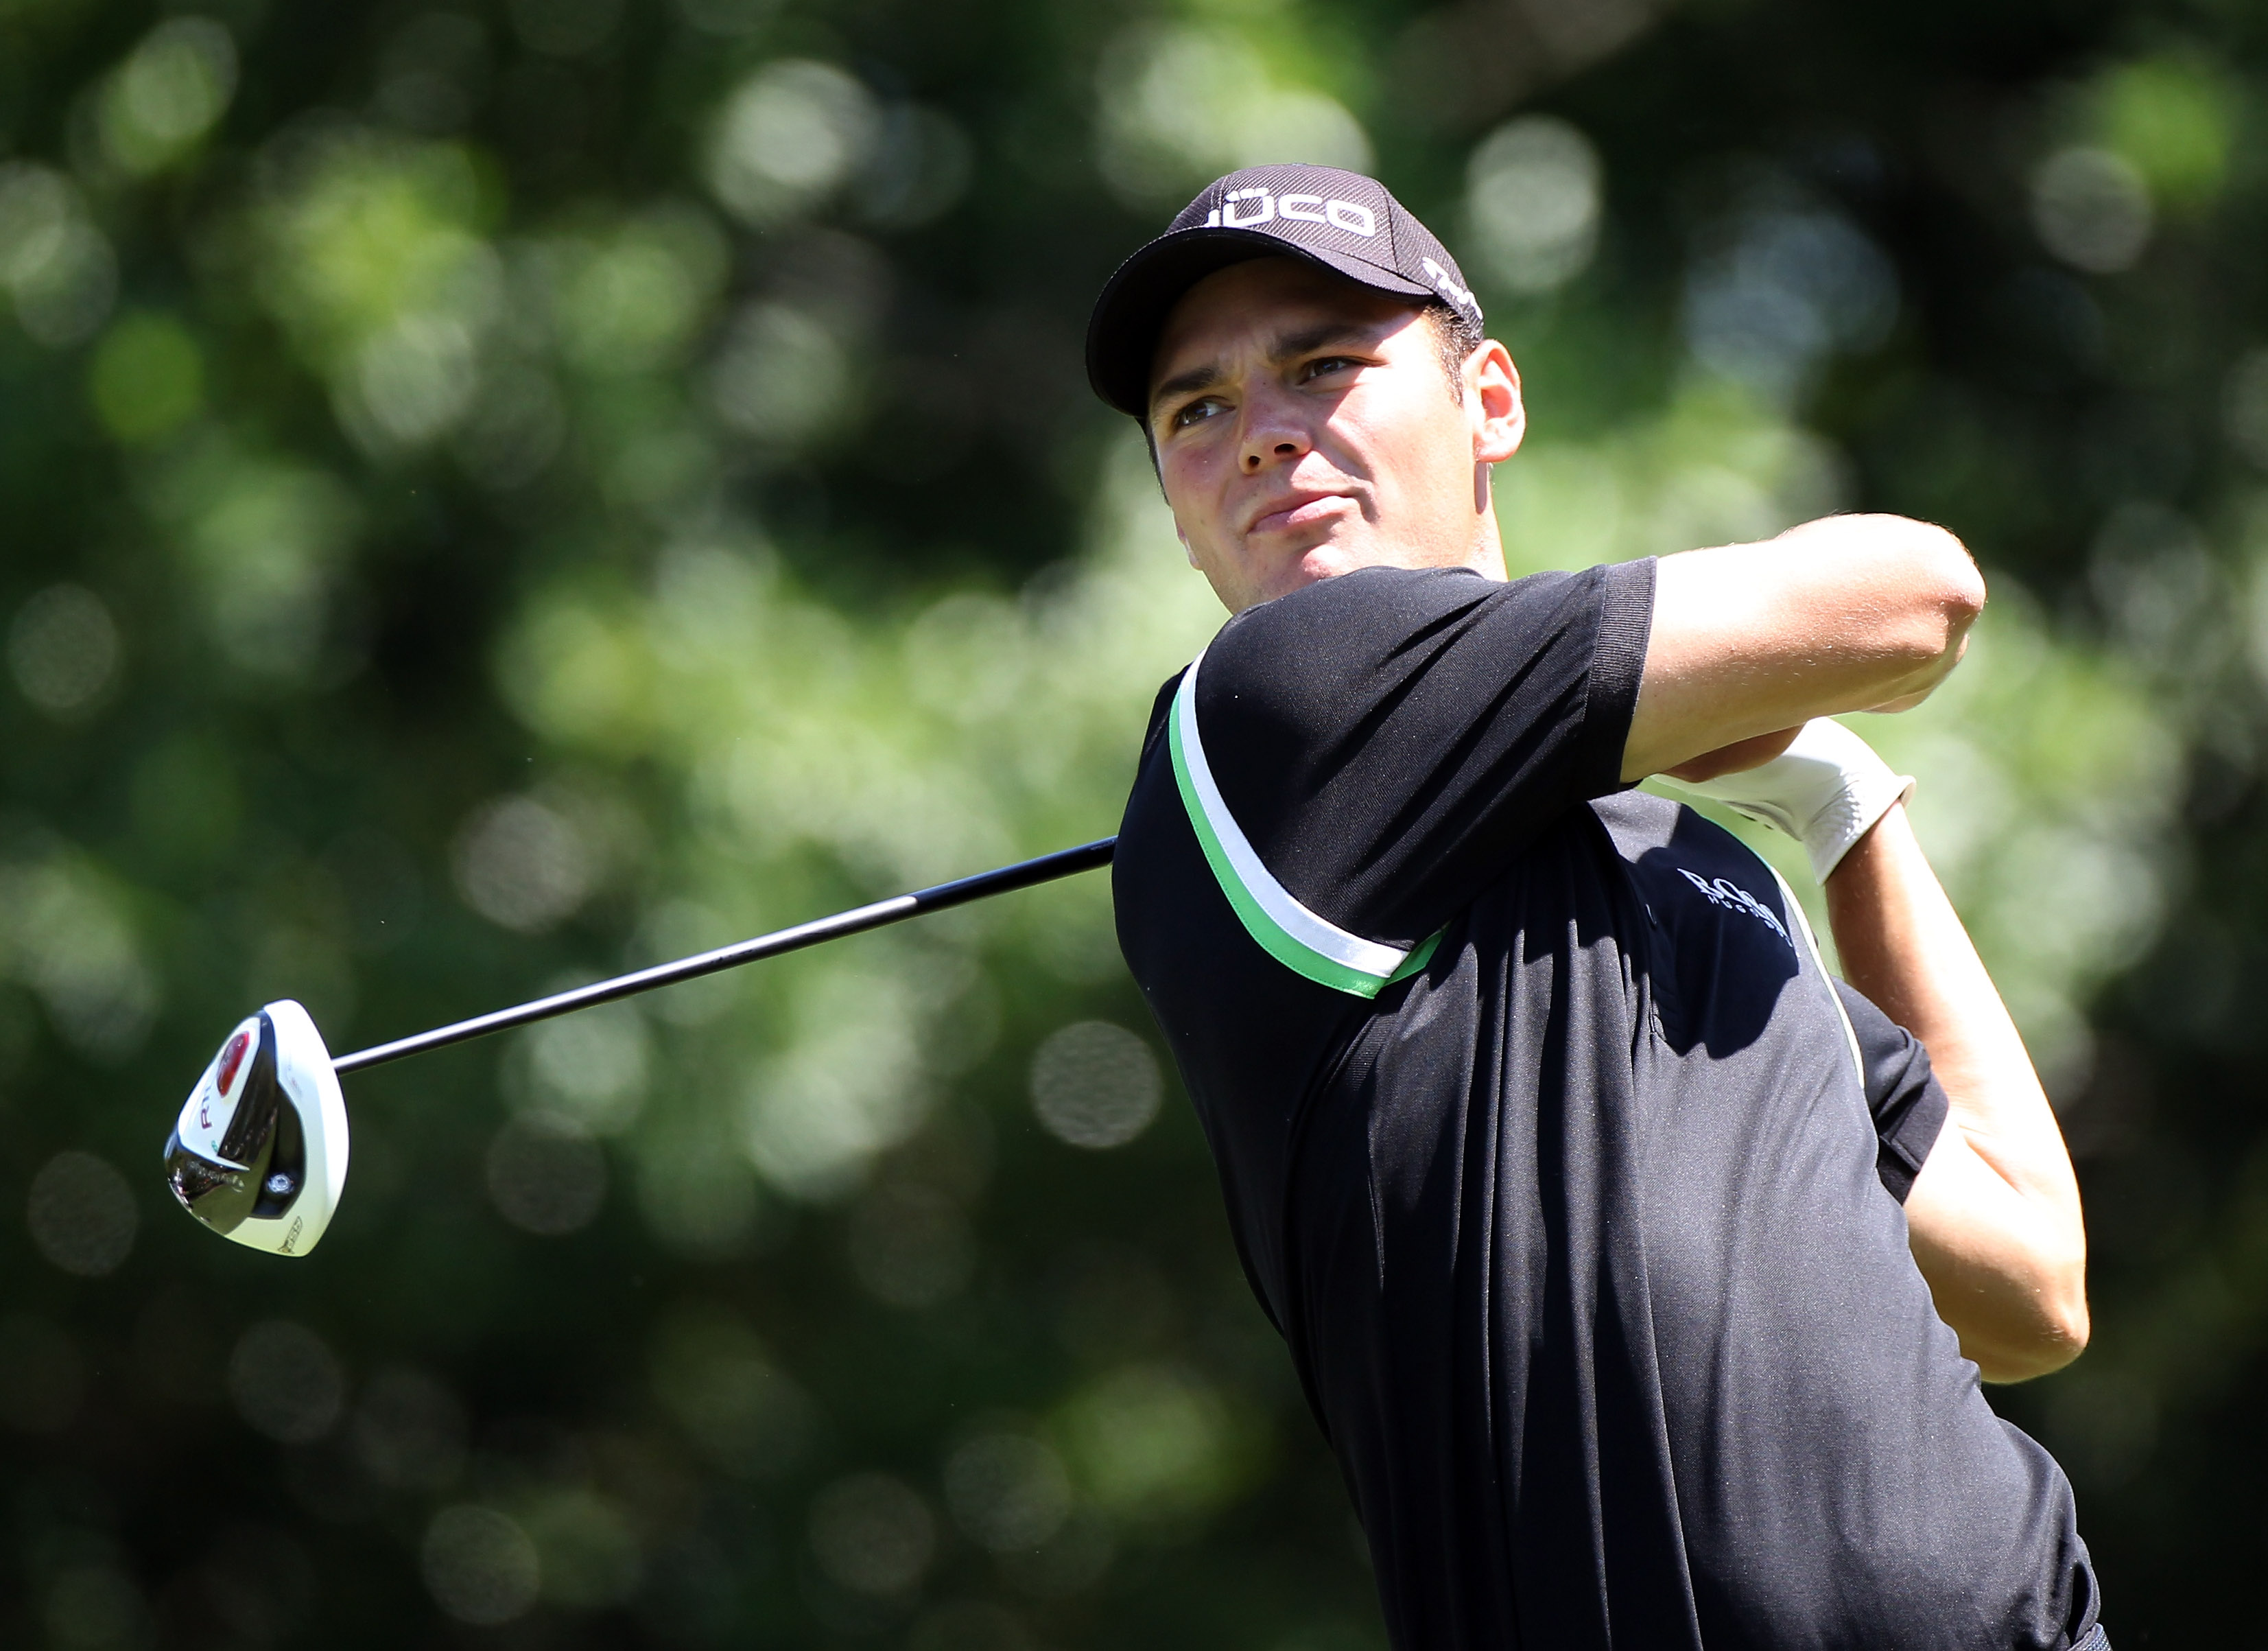 PALM HARBOR, FL - MARCH 17:  Martin Kaymer of Germany plays a shot on the 9th hole during the first round of the Transitions Championship at Innisbrook Resort and Golf Club on March 17, 2011 in Palm Harbor, Florida.  (Photo by Sam Greenwood/Getty Images)